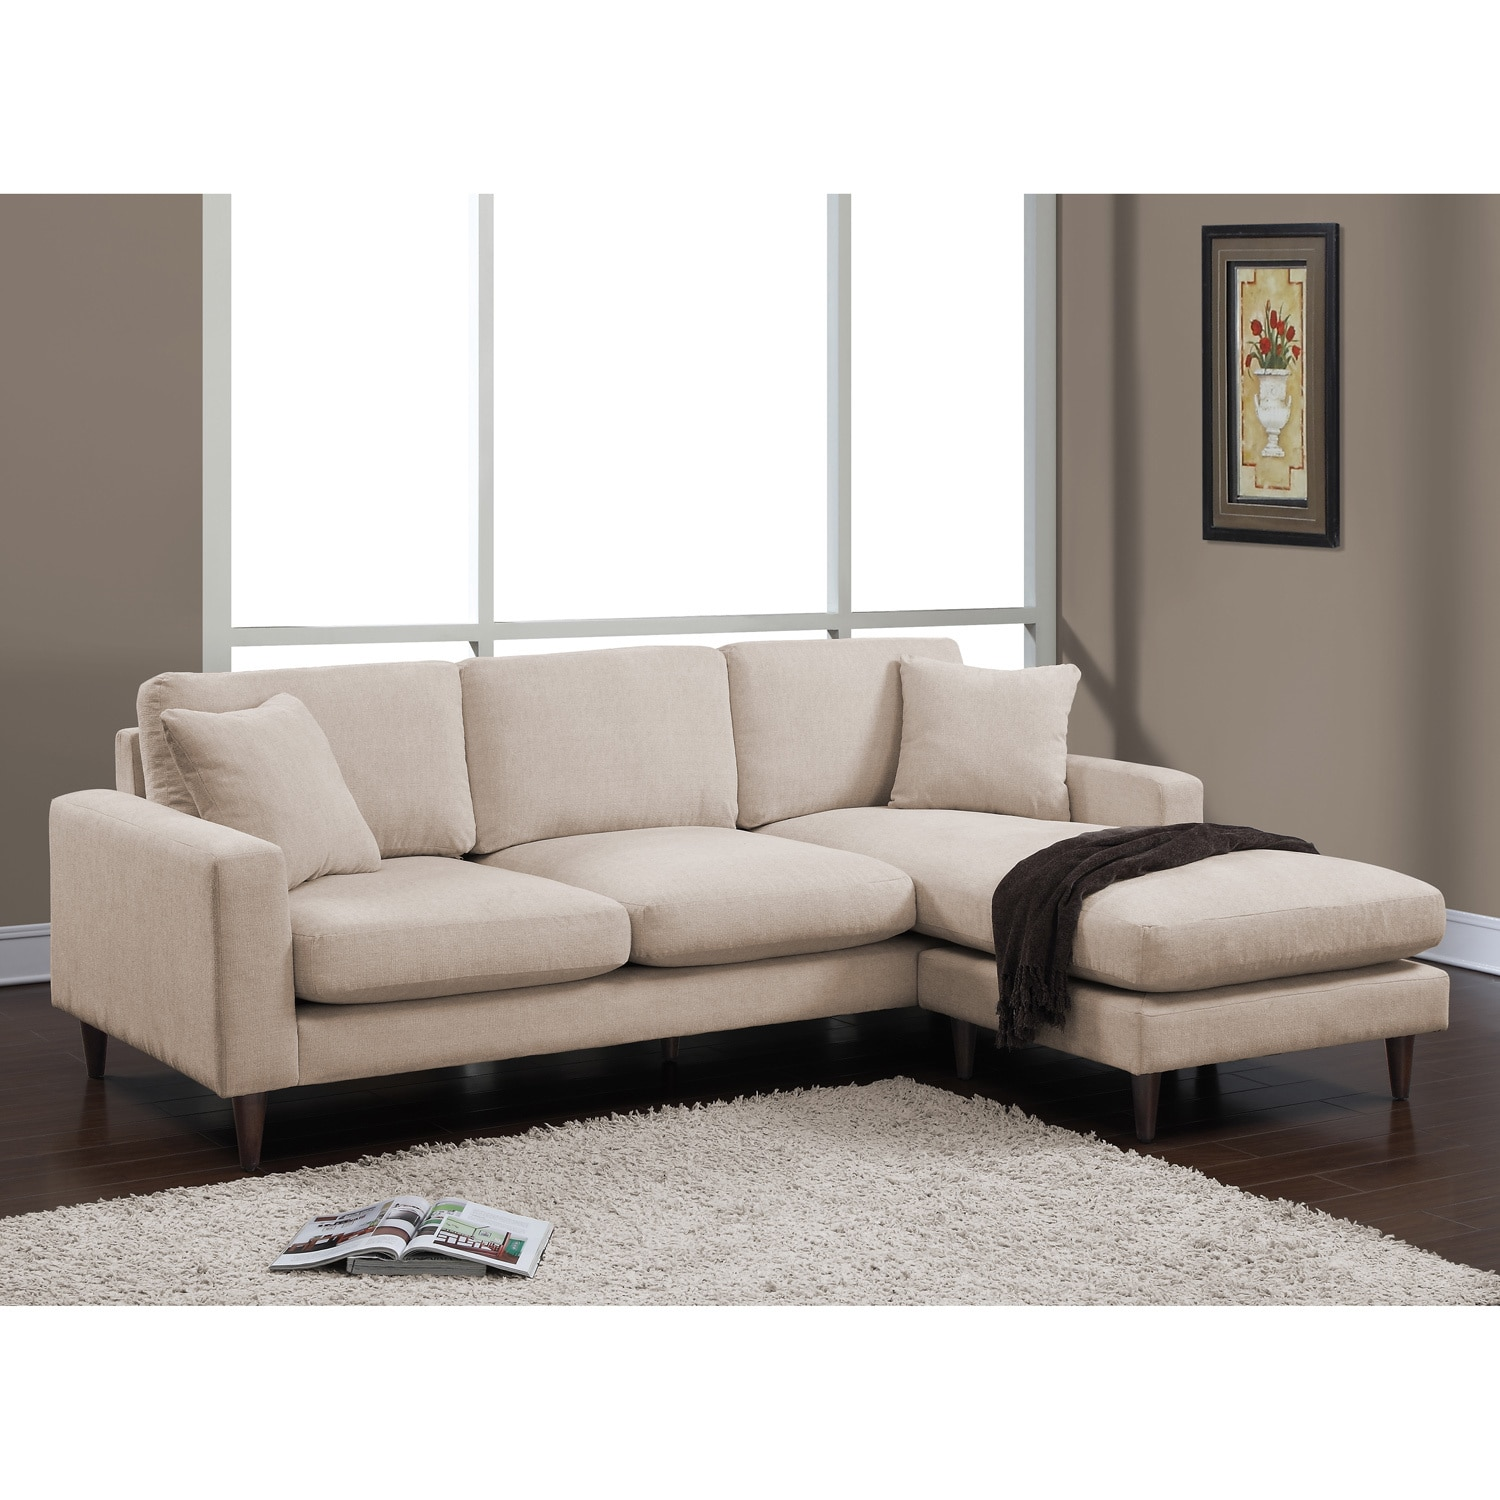 28 [ Overstock Sectional Sofa ]